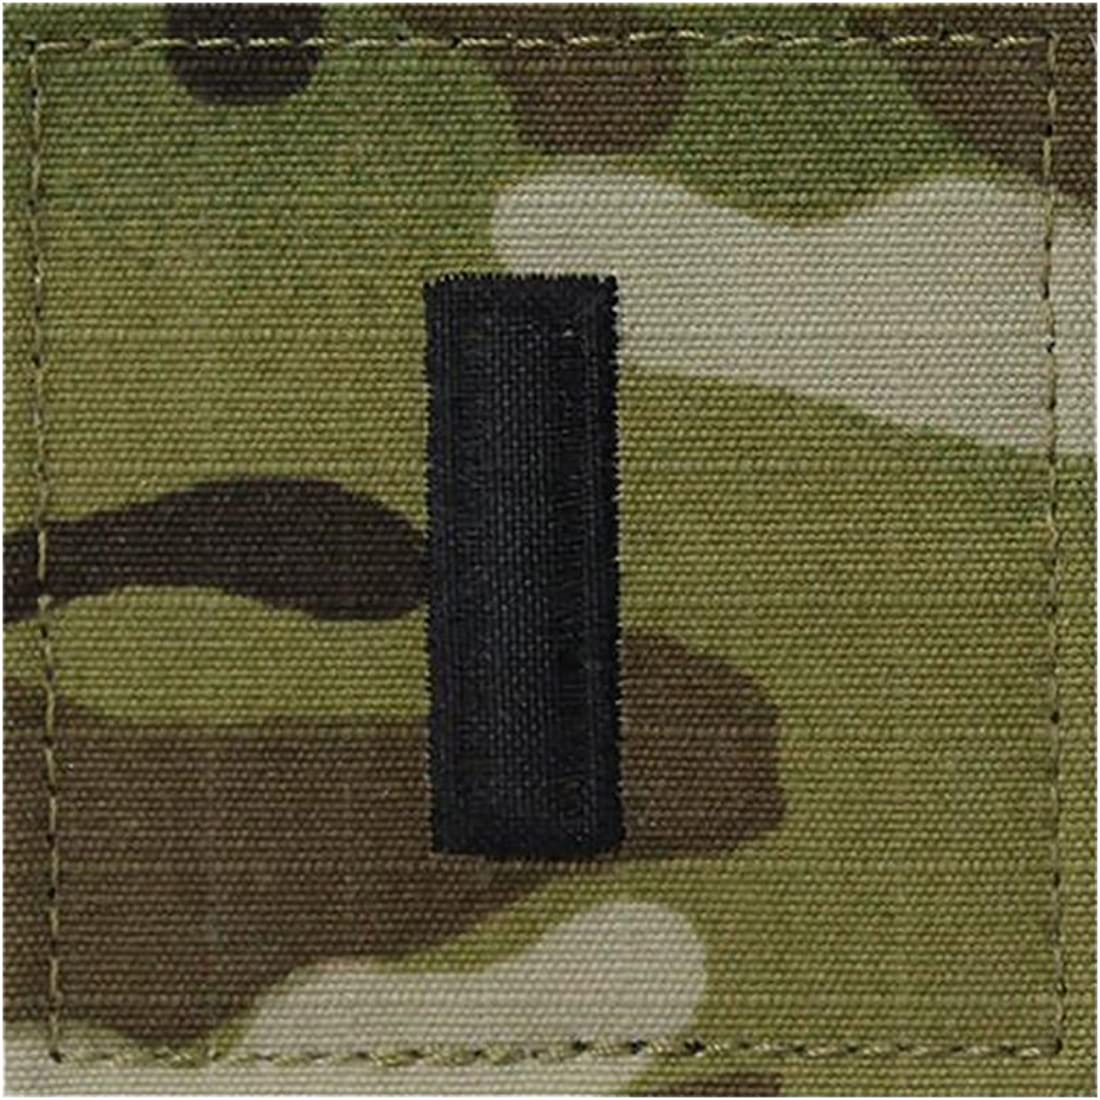 Army Touch Fastener White // Olive Bw Insignia: Staff Captain